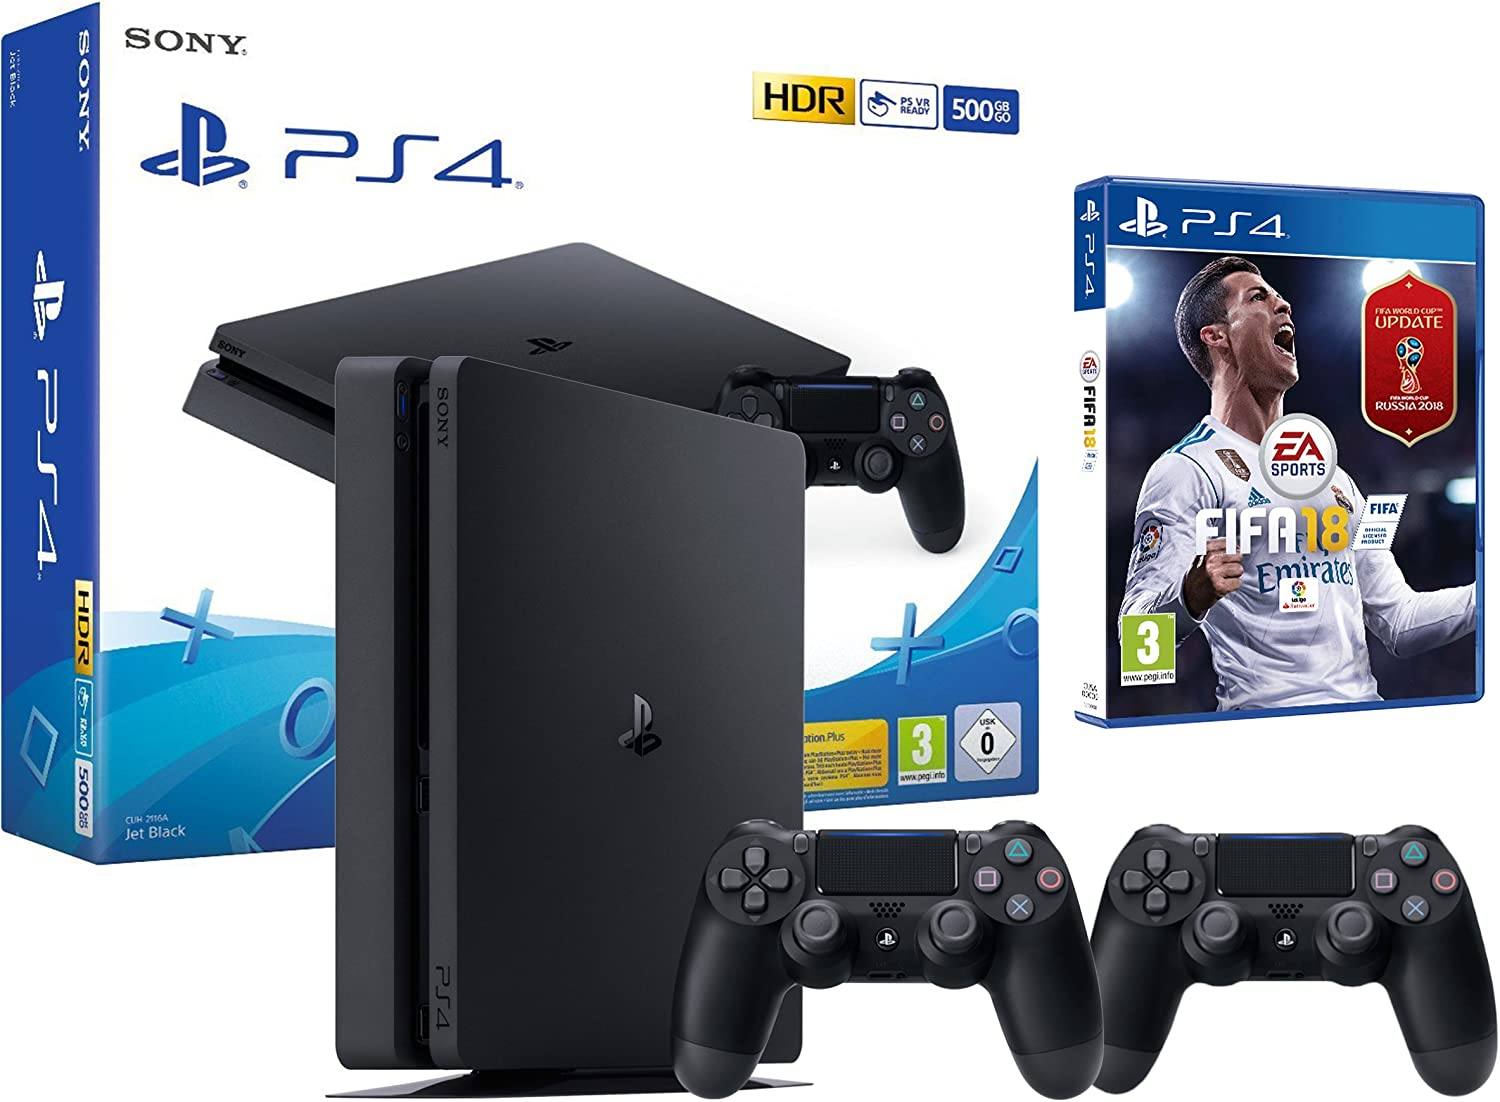 PS4 Slim 500Gb Negra Playstation 4 Consola - FIFA 18 + 2 Mandos Dualshock 4: Amazon.es: Videojuegos